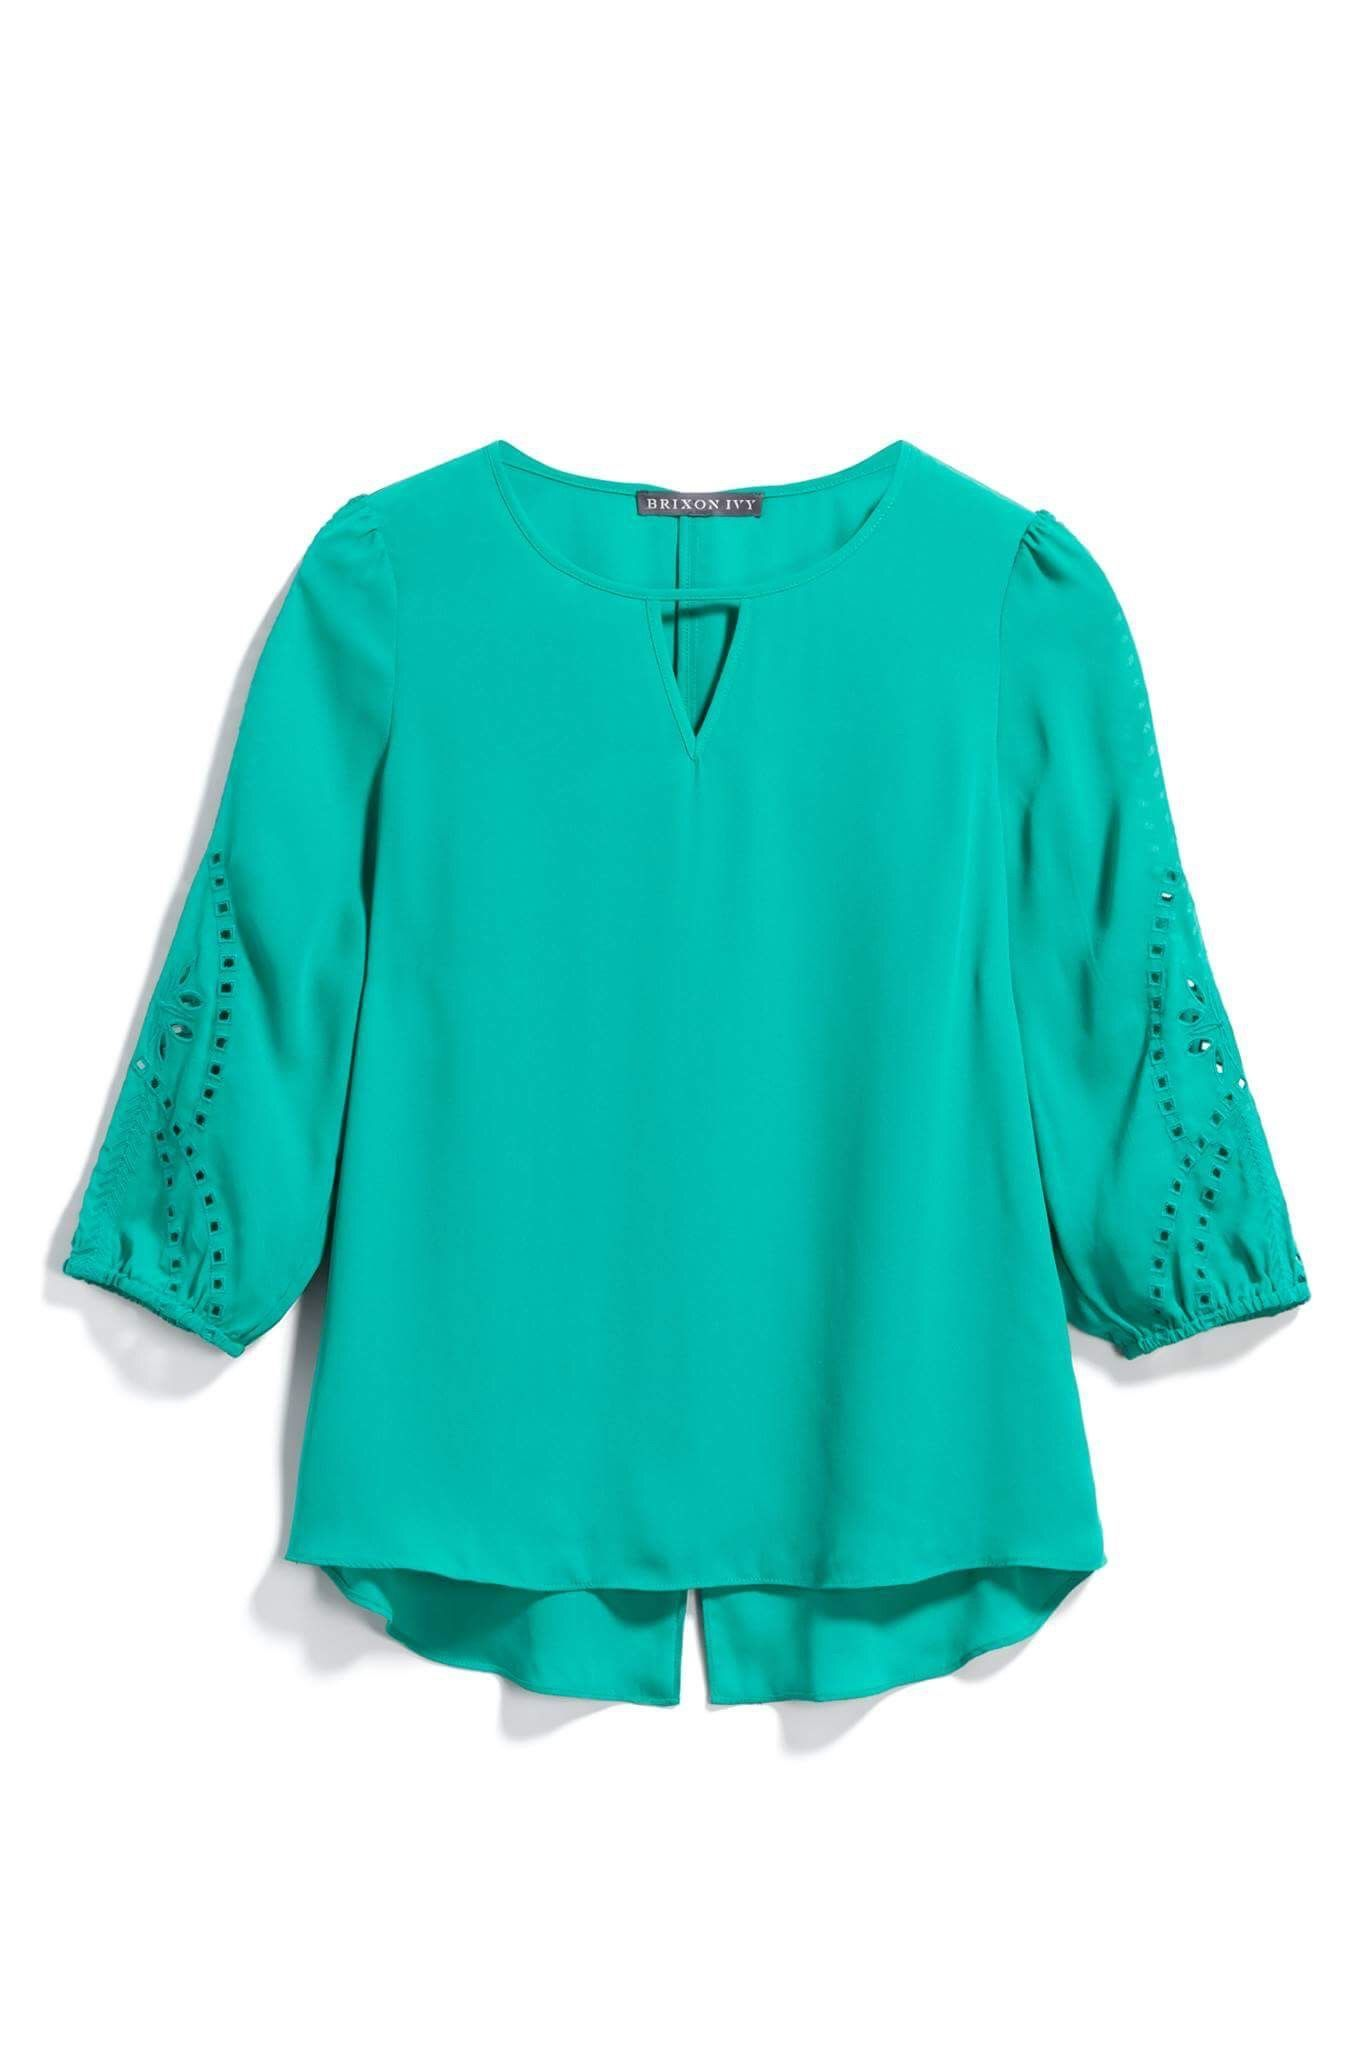 Stitch fix style quiz referral link included when you use my